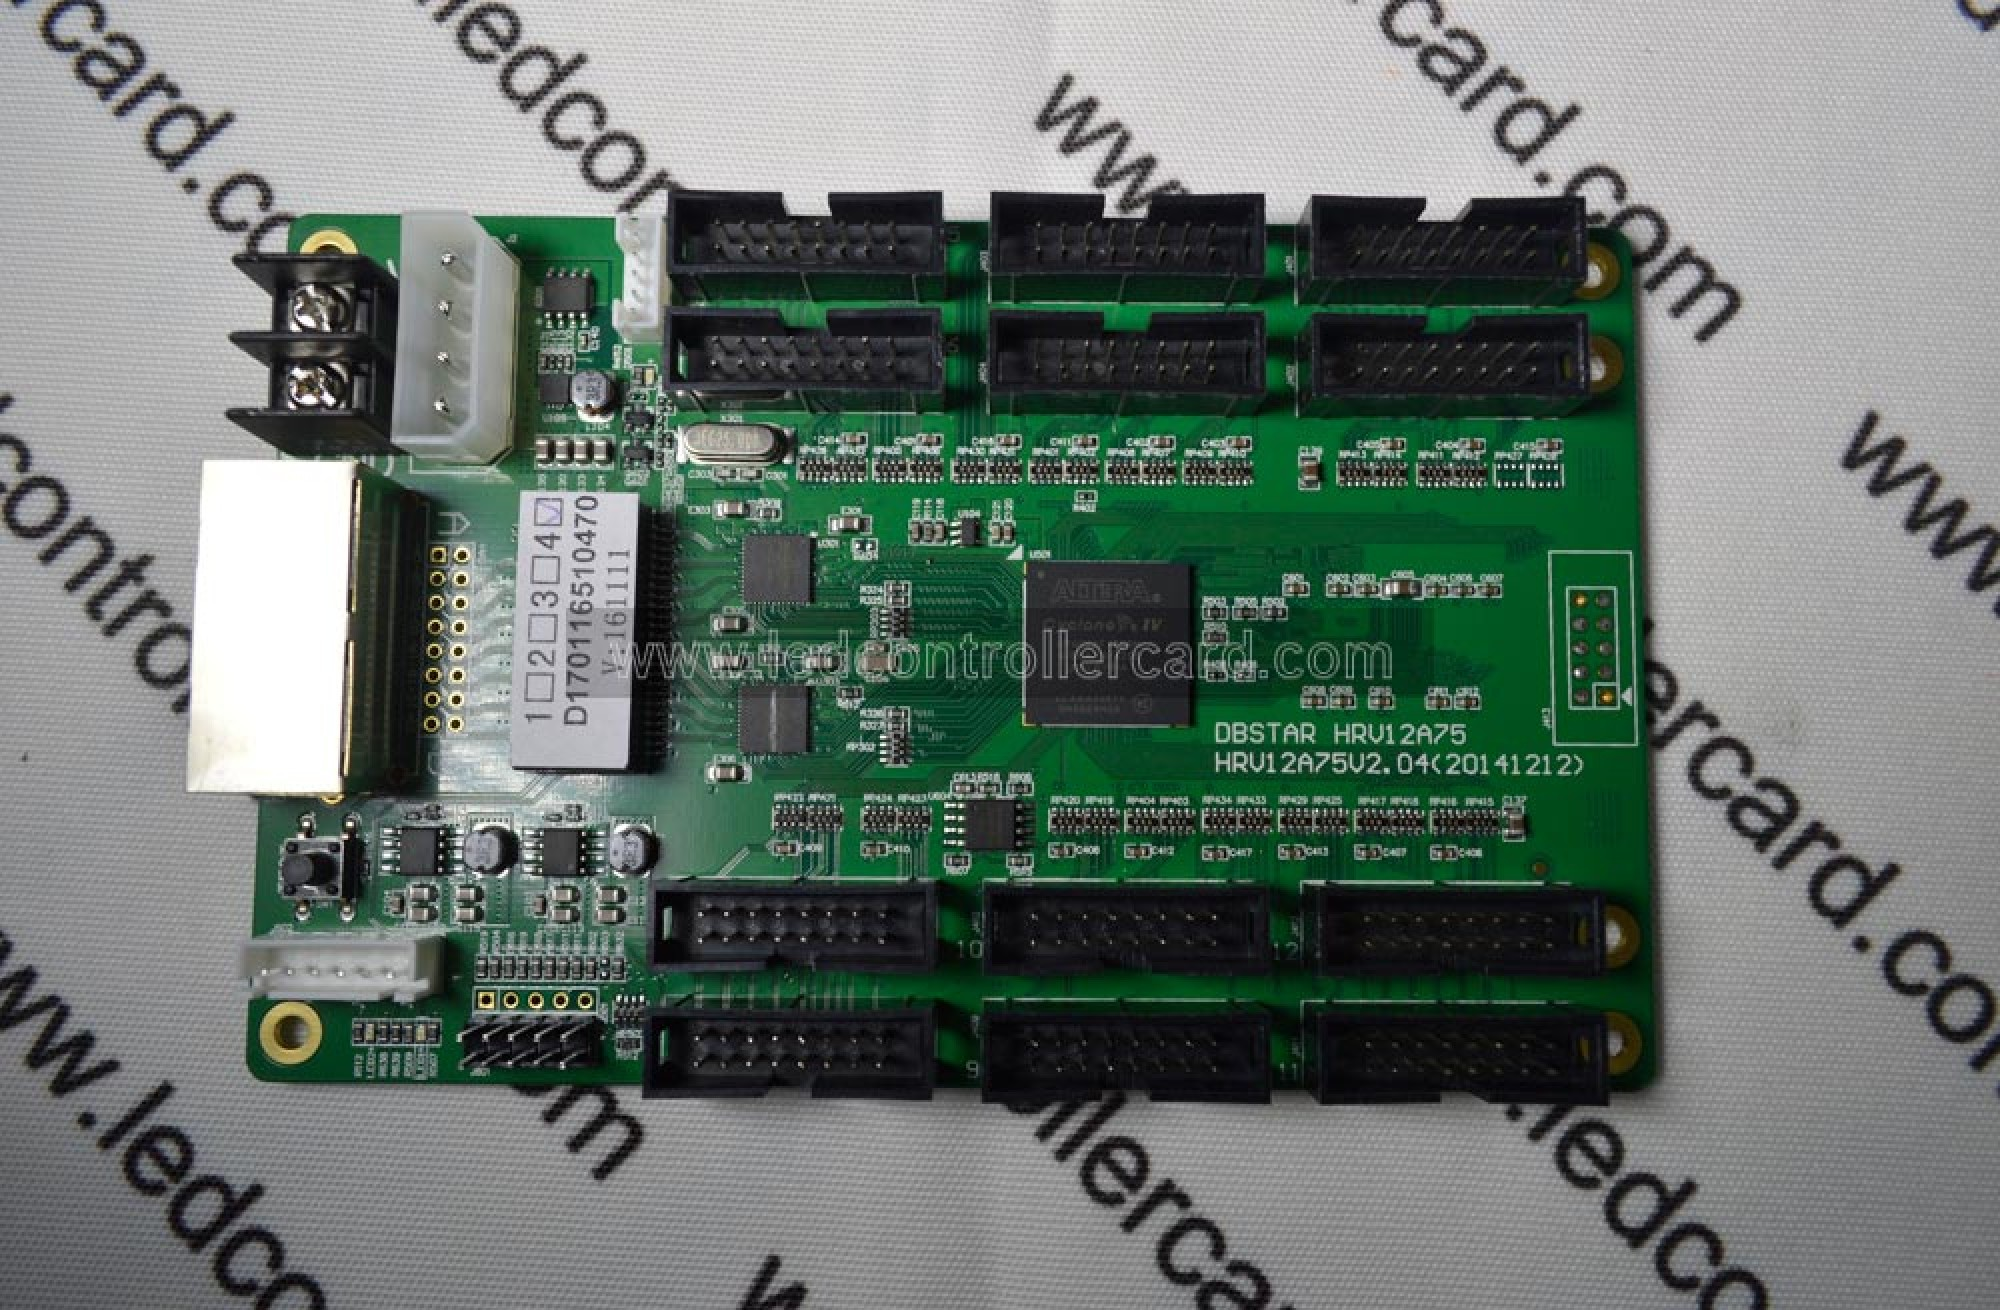 DBSTAR HRV12A75 Full Color Receiver Card with HUB75 Output